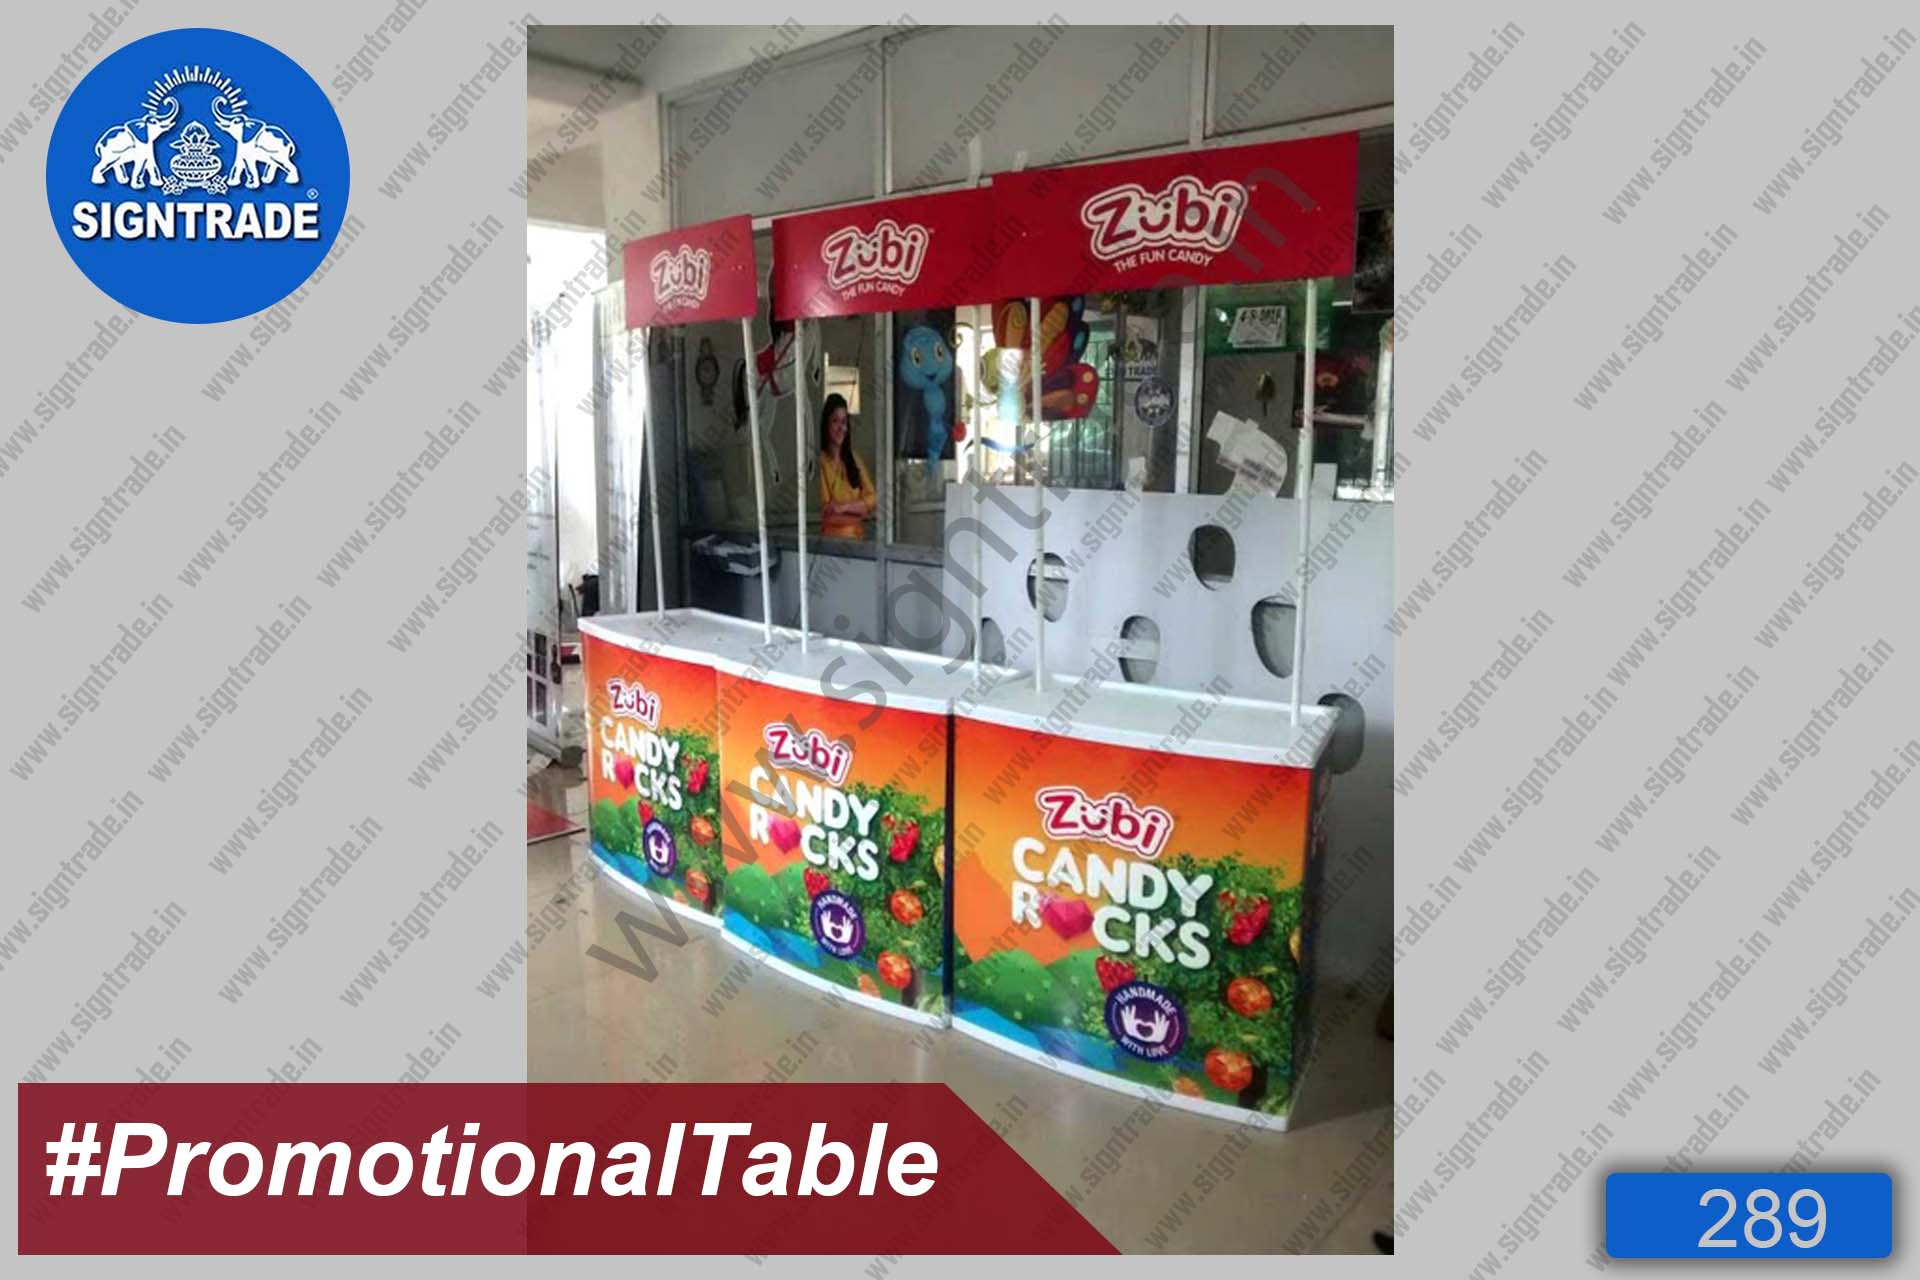 Zubi Candy Rocks - Promotional Table